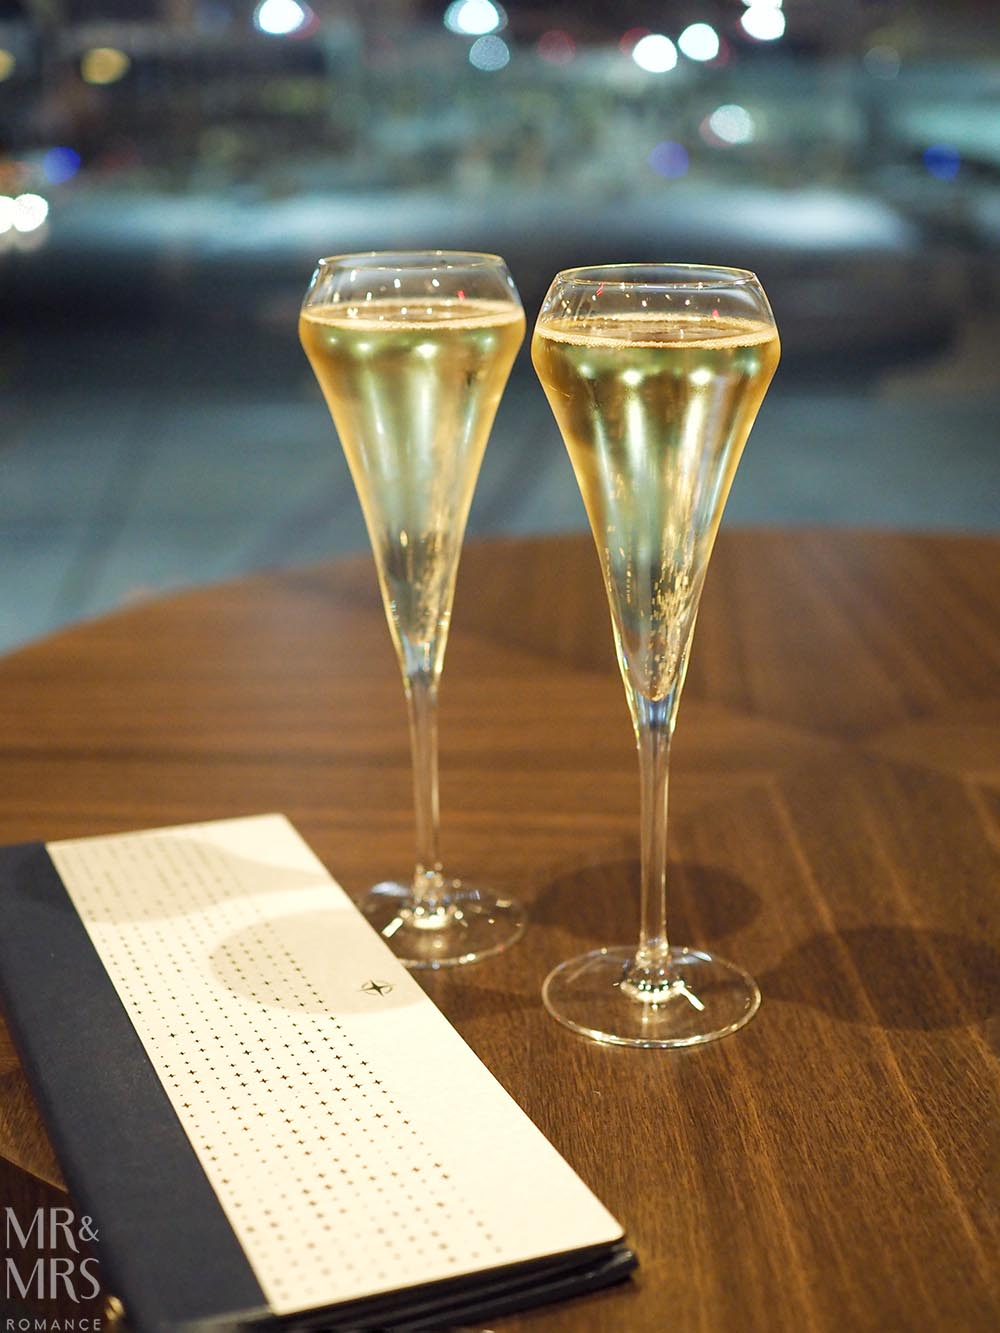 United Polaris Lounge review - champagne